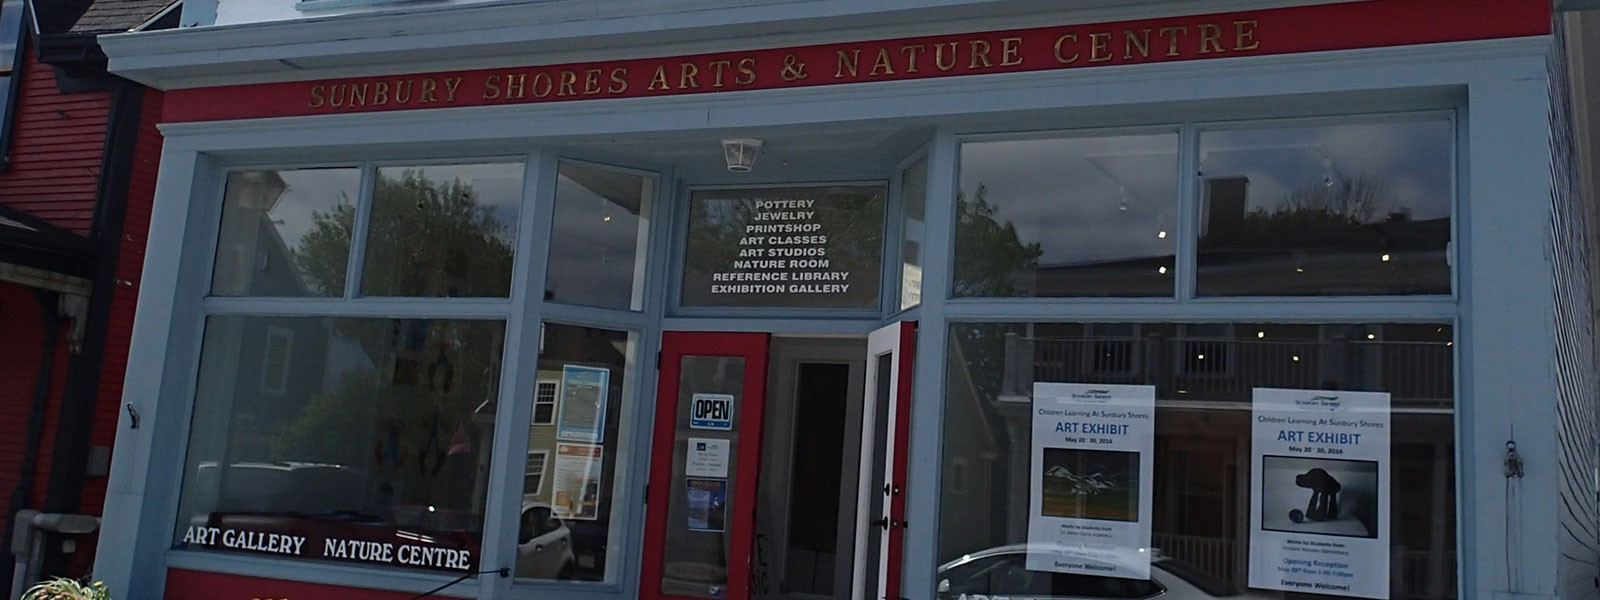 Sunbury Shores Arts and Nature Centre